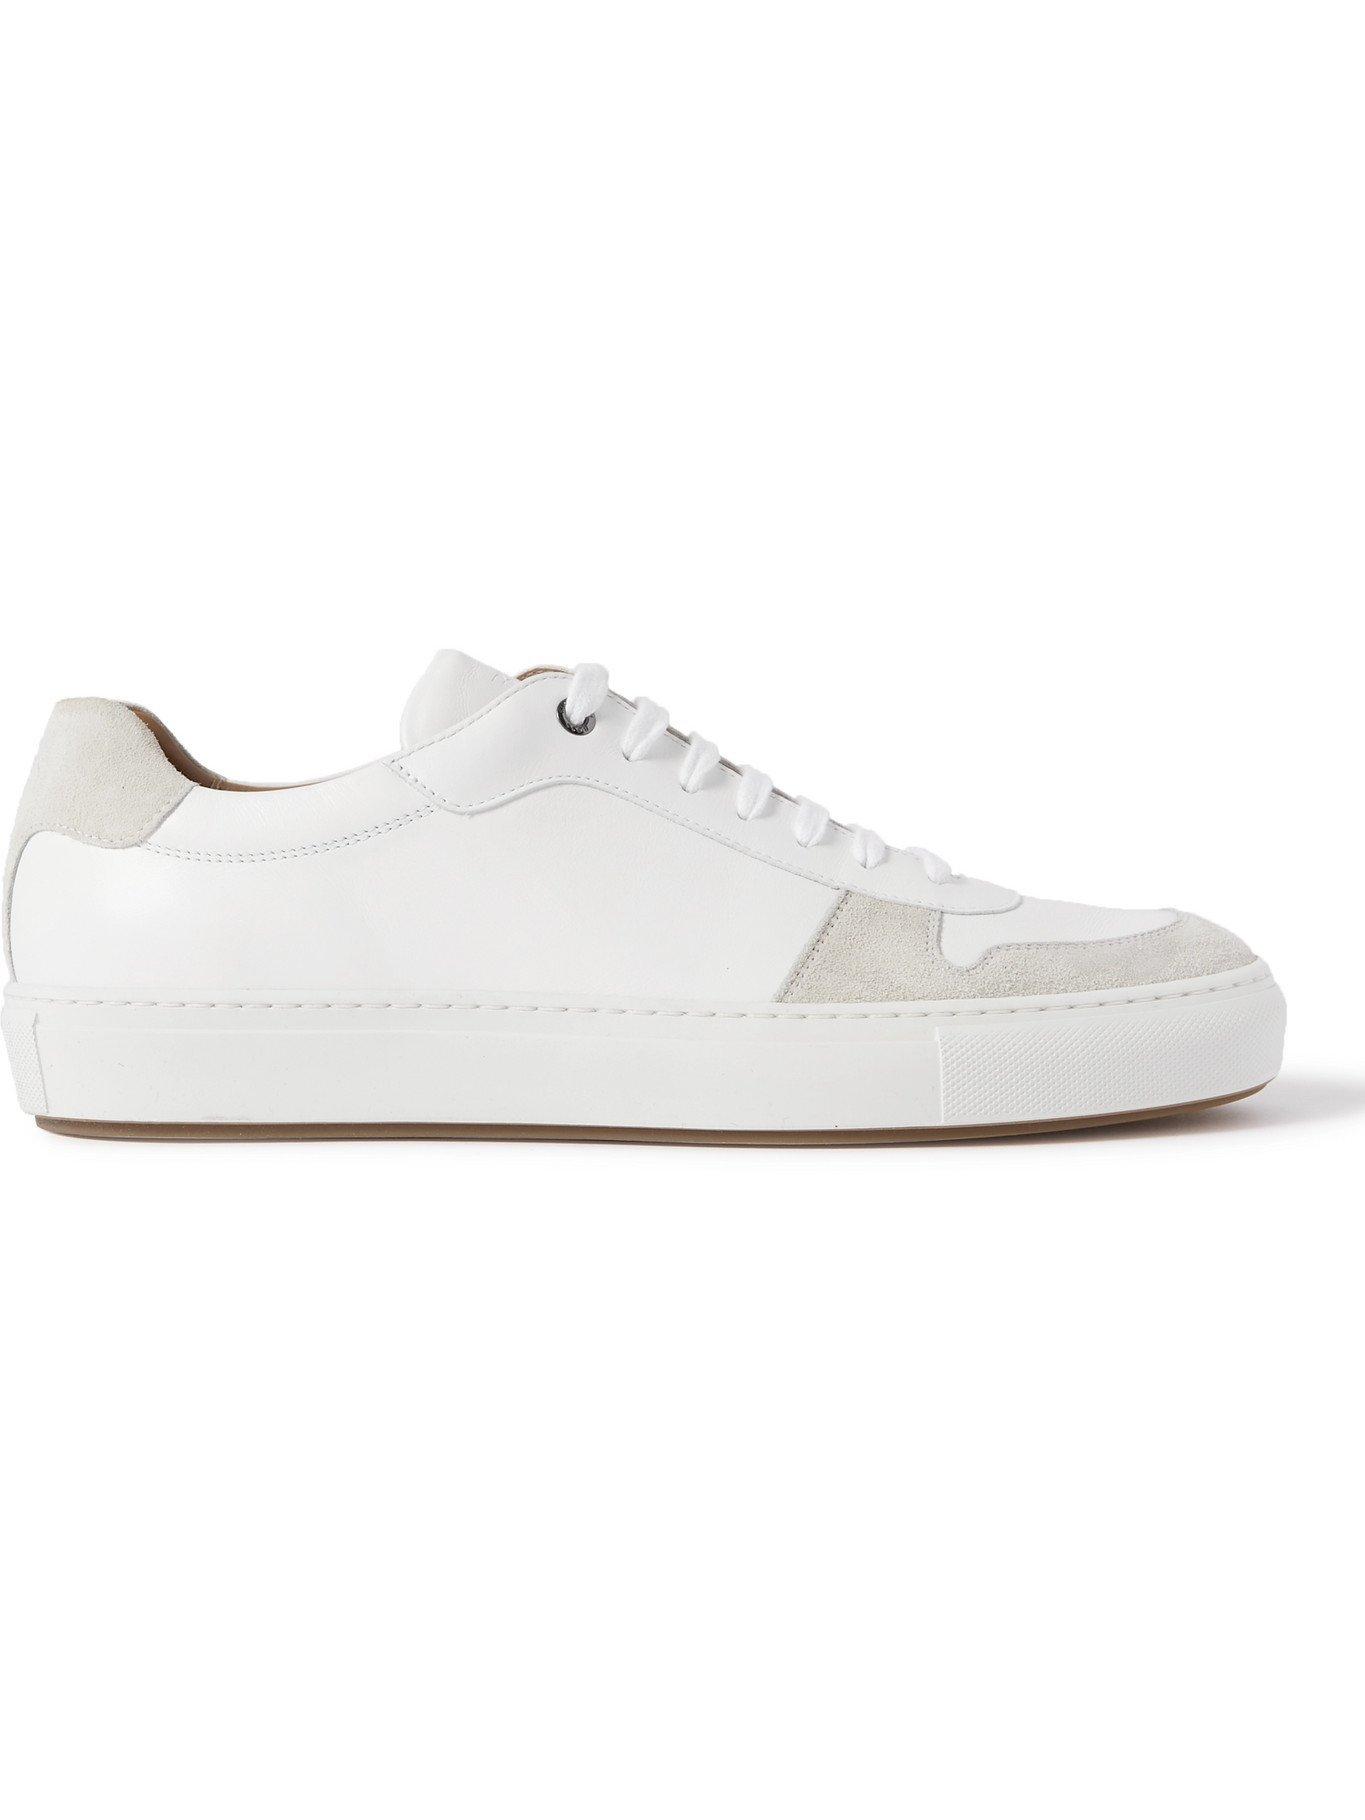 HUGO BOSS - Leather and Suede Sneakers - White - UK 8